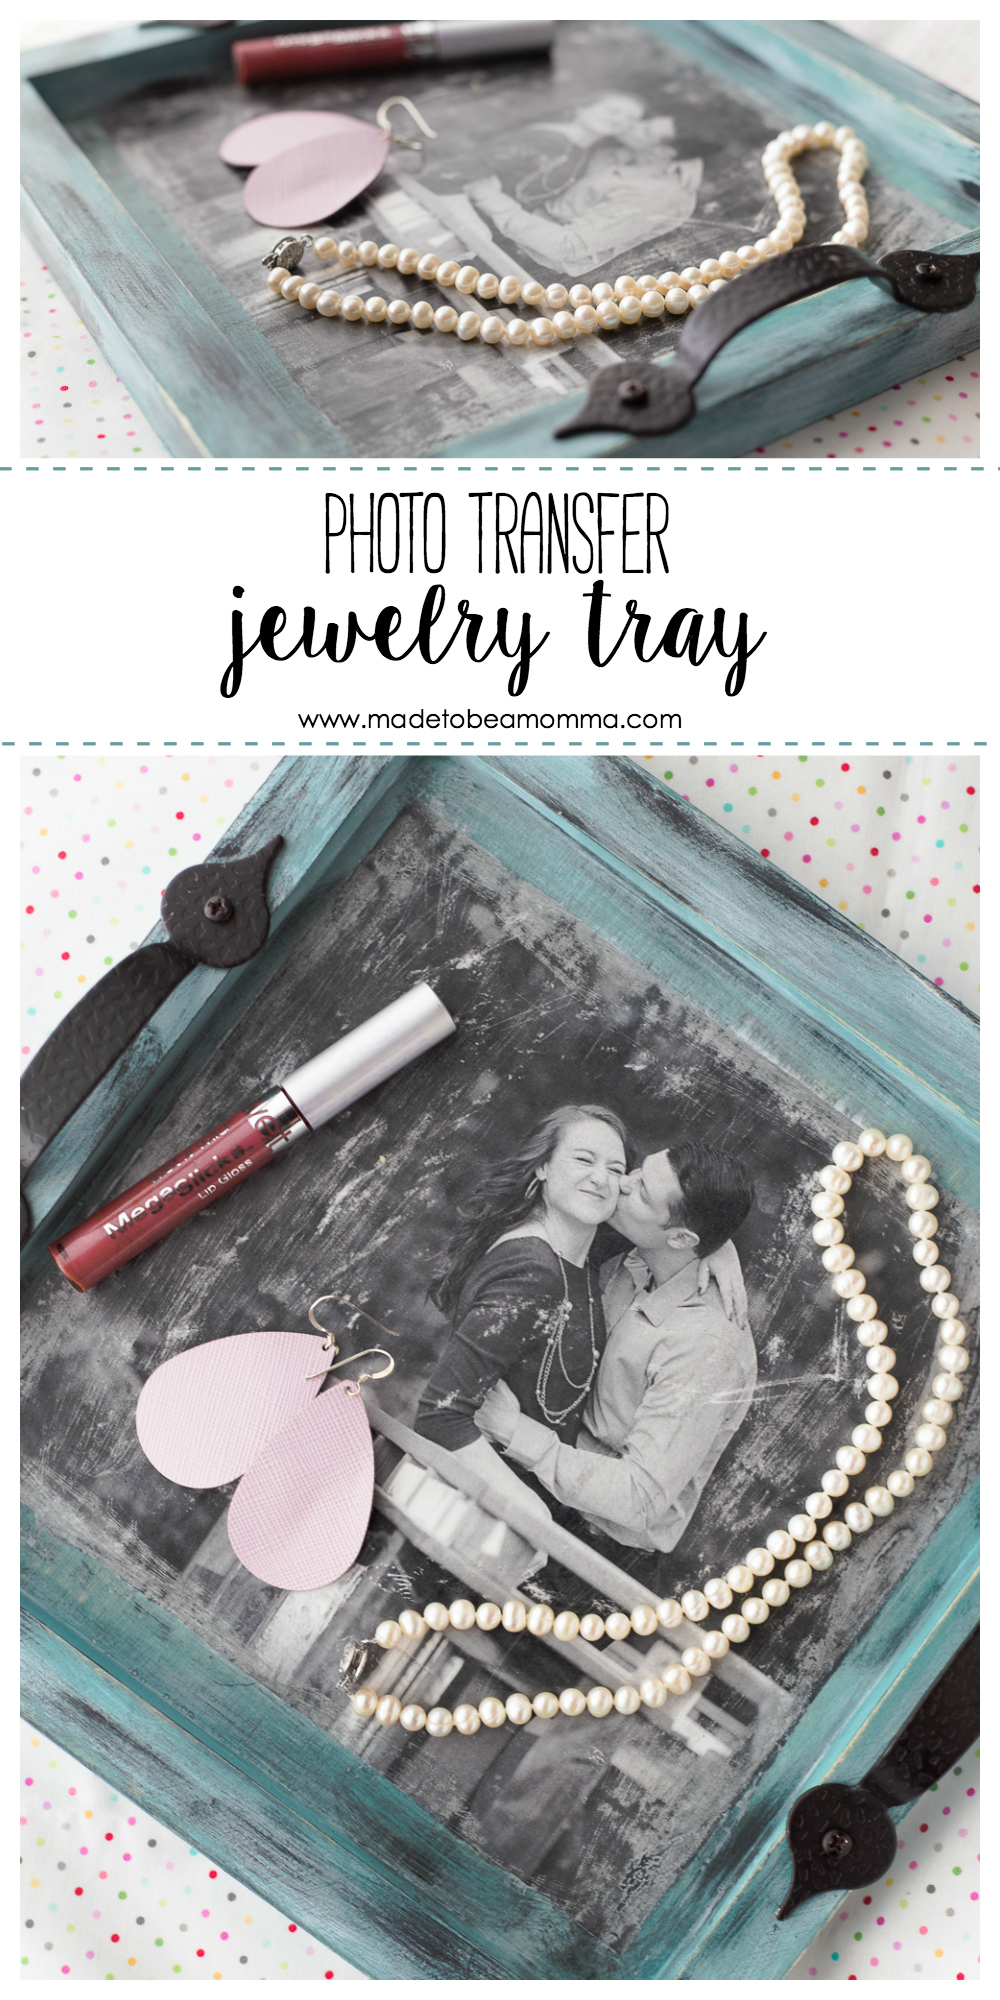 Photo Transfer Jewelry Tray: a simple and beautiful way to personalize a tray for displaying jewelry.